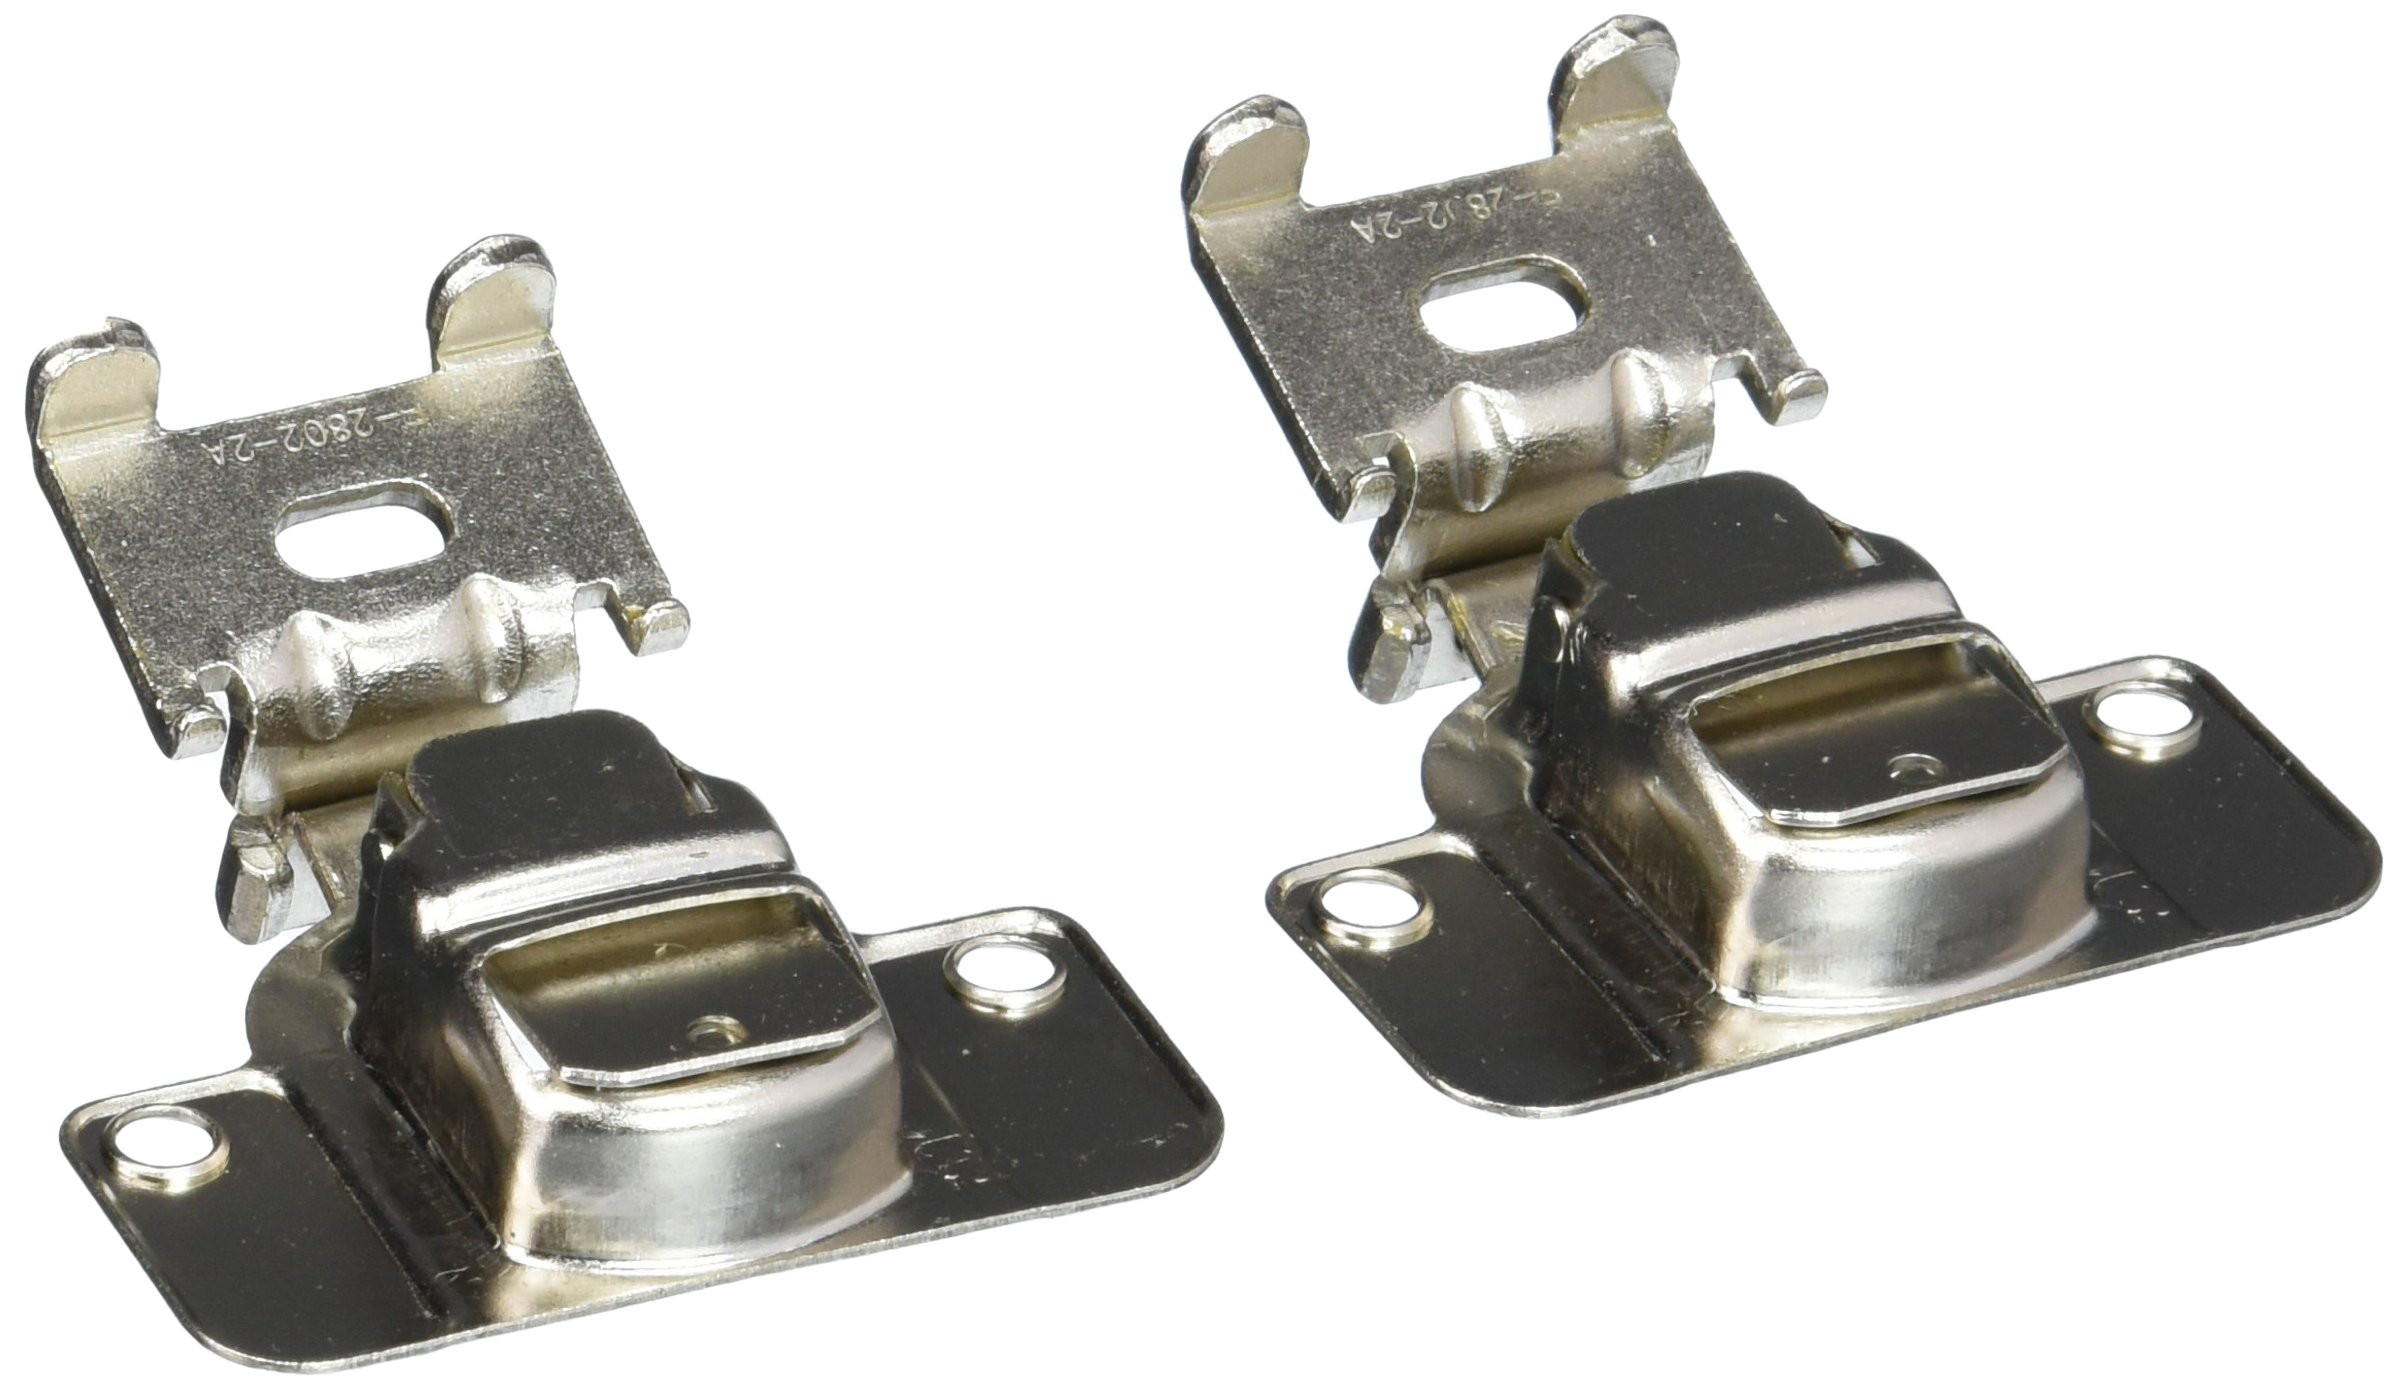 Amerock BP2811I1214 Nickel Finish Matrix Concealed 2-Way Adjustable Cabinet Hardware Hinge, 3/8-Inch Overlay - 10 Pair Pack